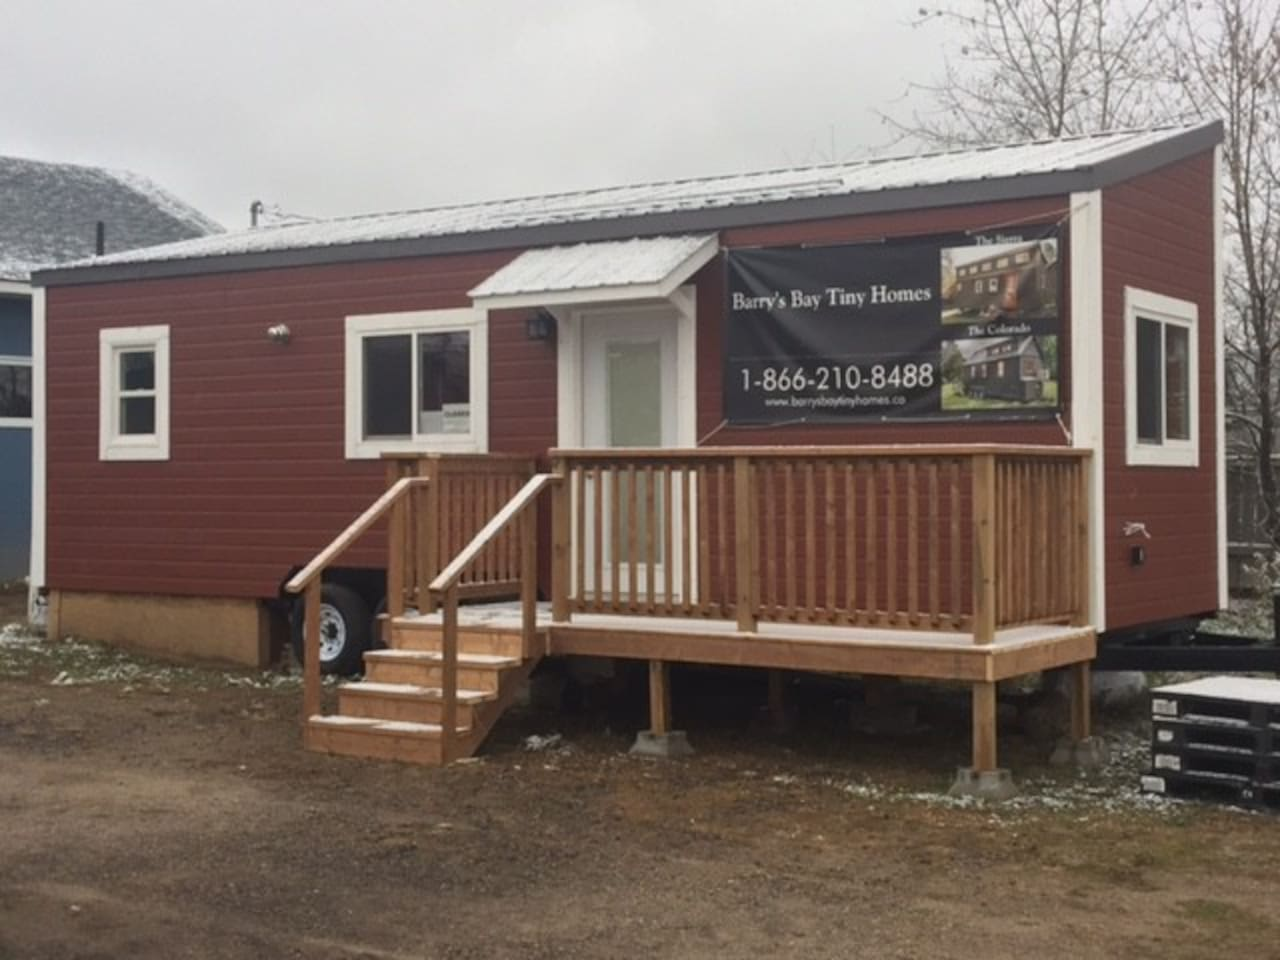 Just completed Tiny Home